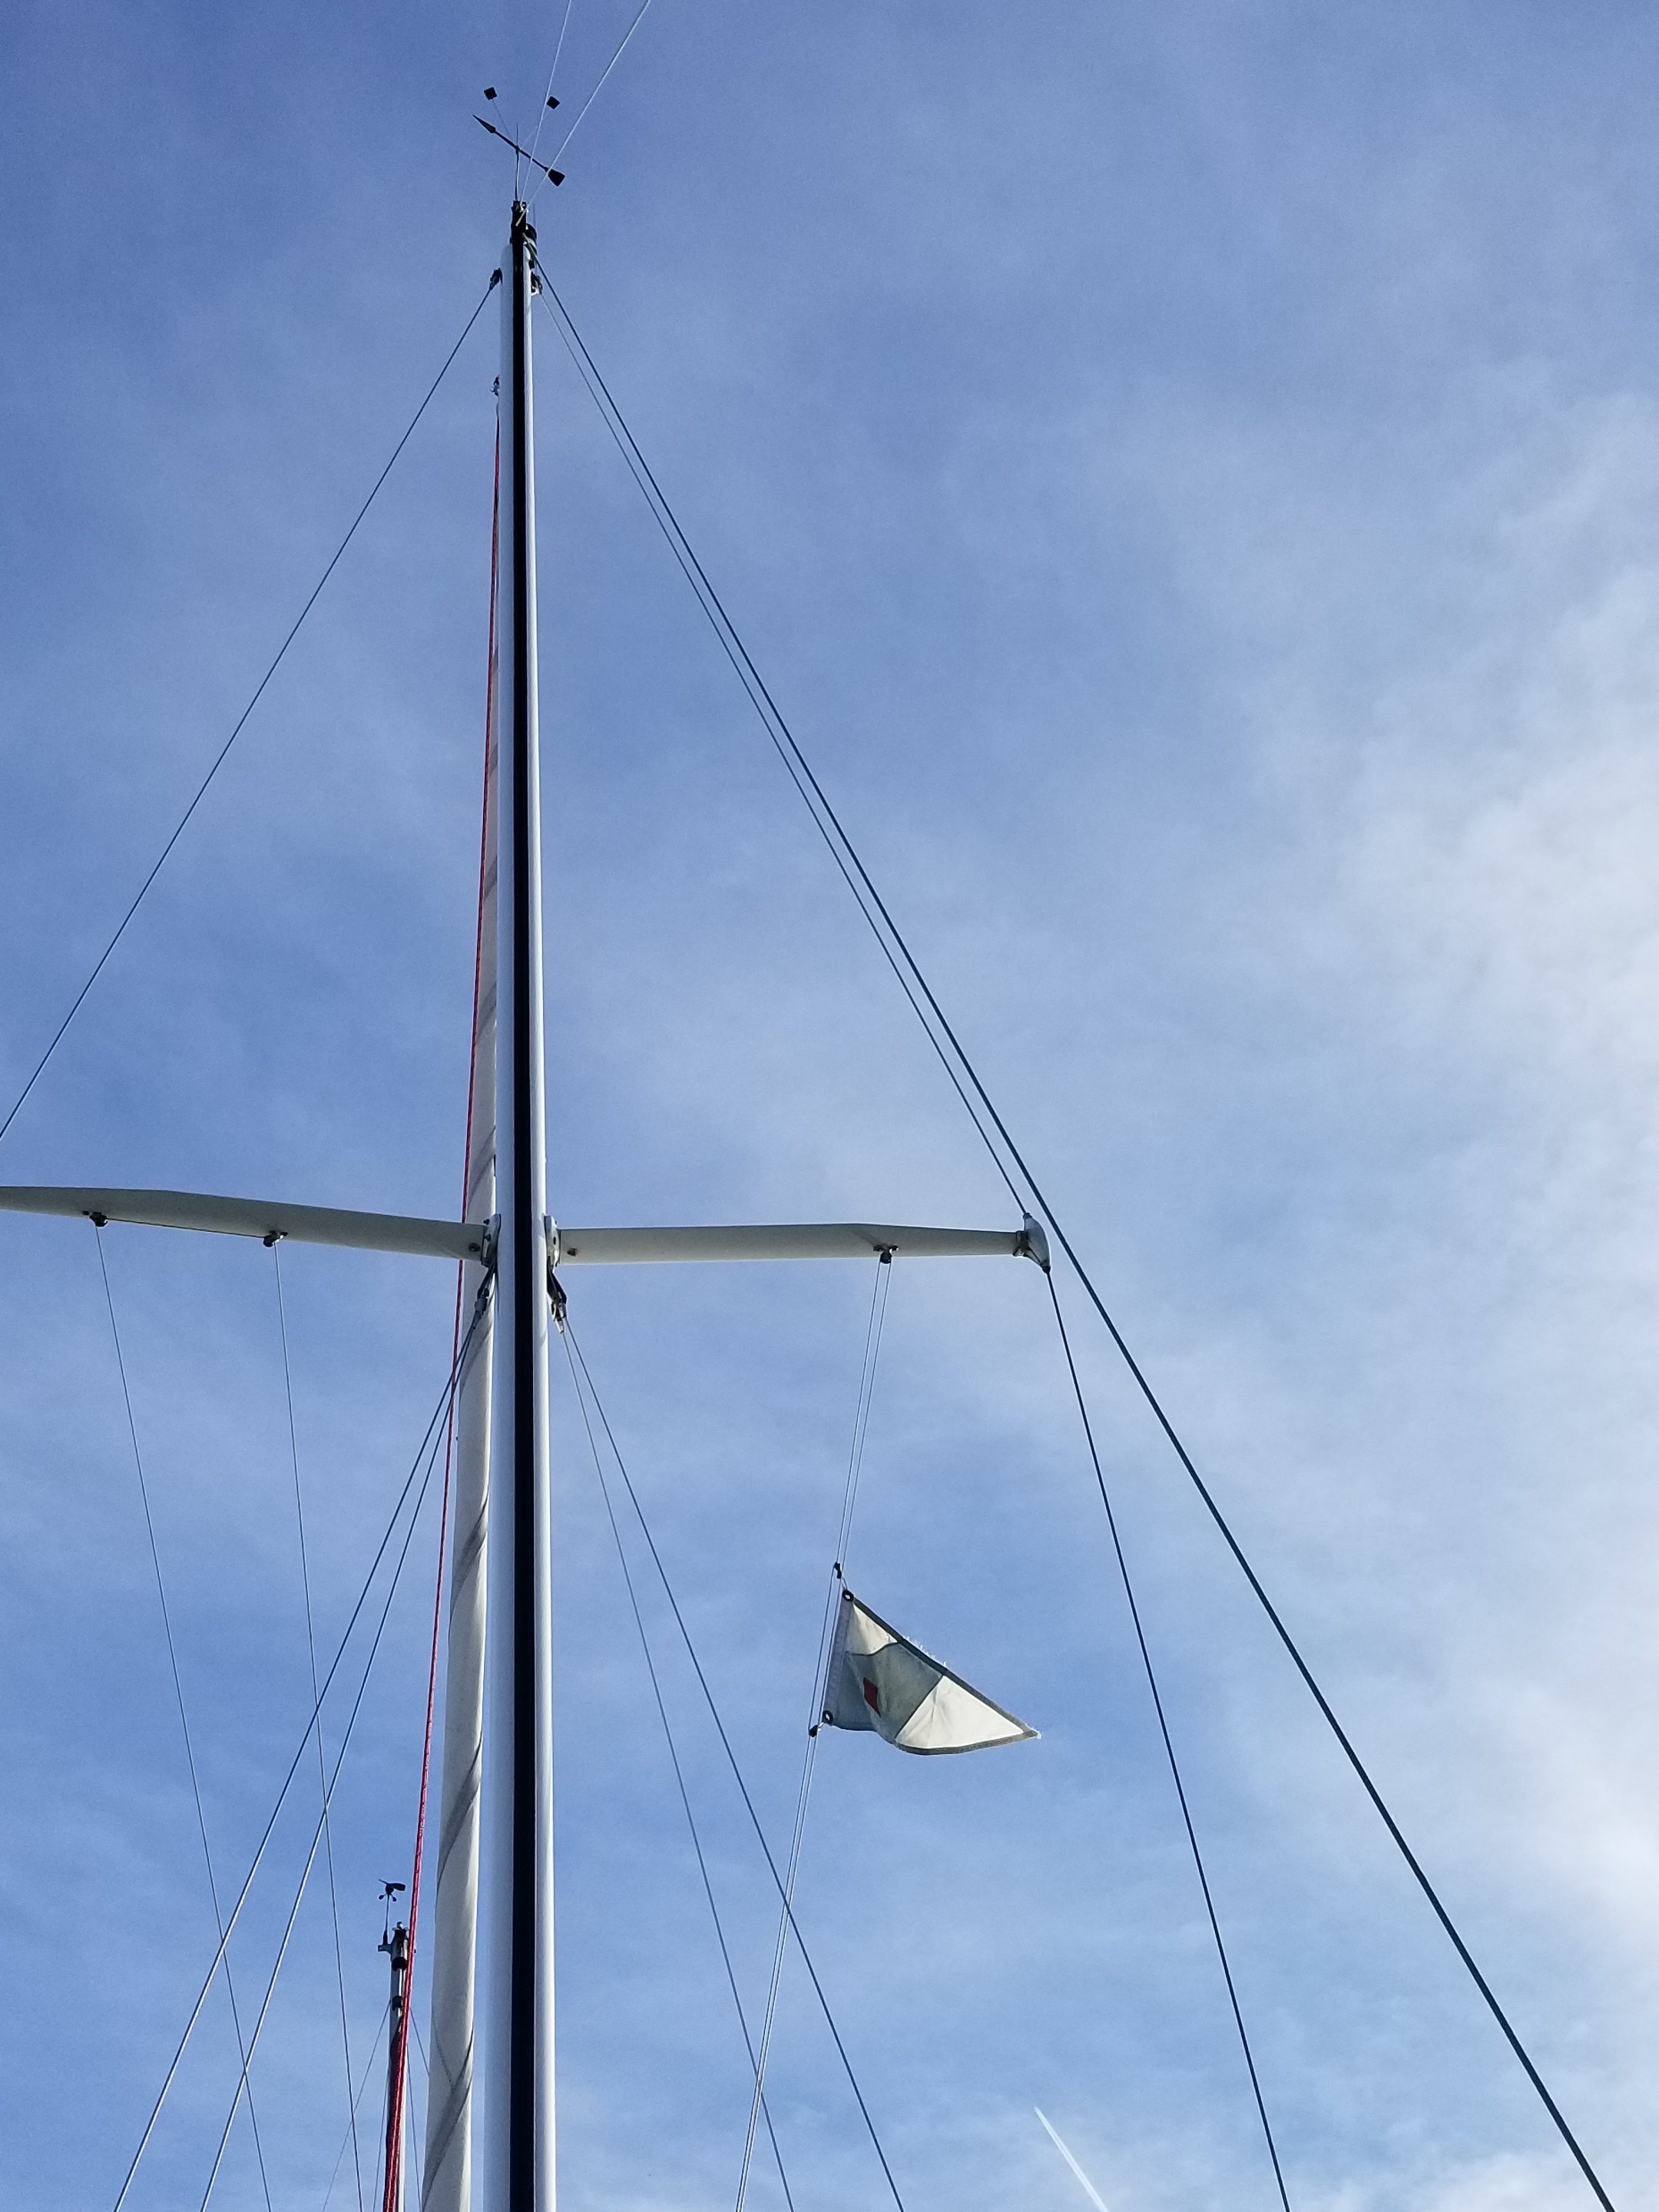 I hoisted our Hances Point Yacht Club burgee too. I'd like to leave it up all the time, but the racer in me sees the turbulence it makes and takes it down when sailing.